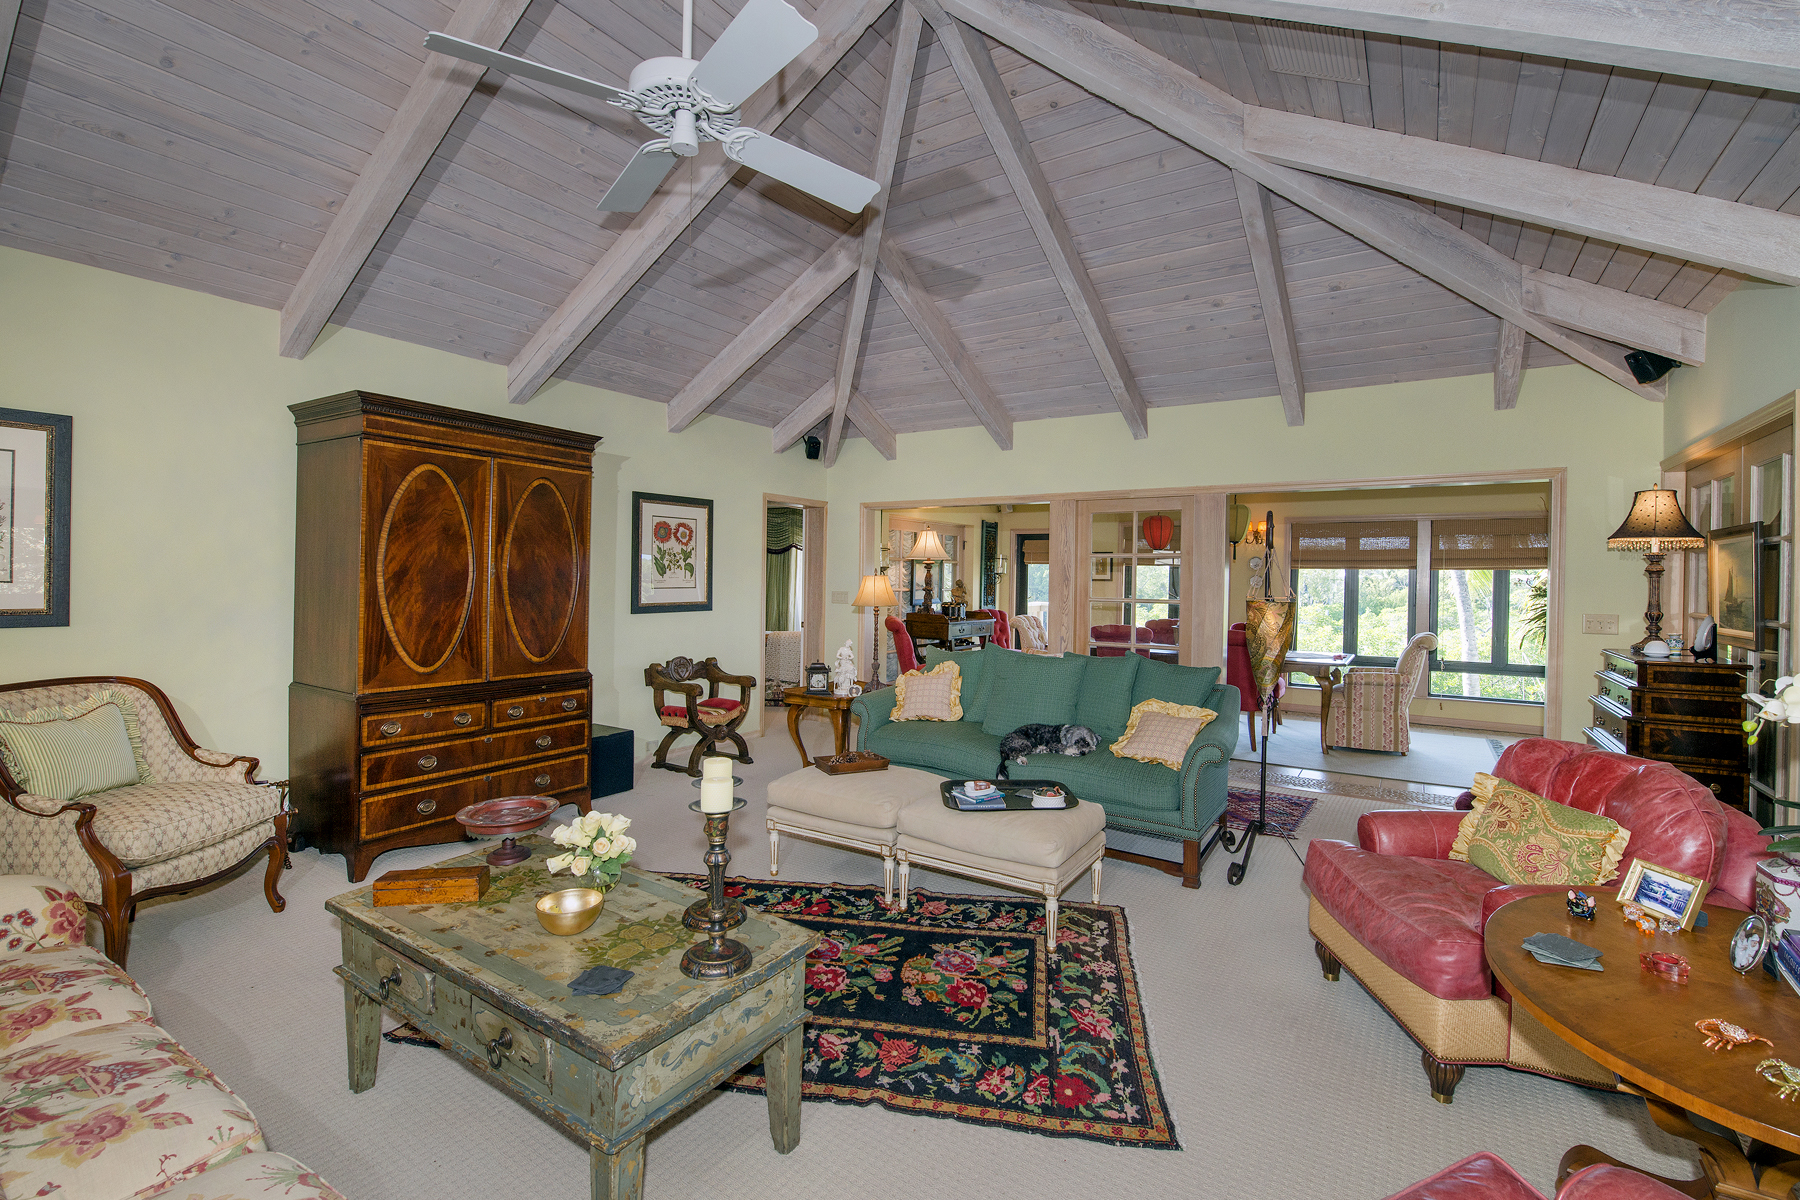 Single Family Home for Sale at Waterfront Family Home at Ocean Reef 48 Sunrise Cay Drive Ocean Reef Community, Key Largo, Florida, 33037 United States